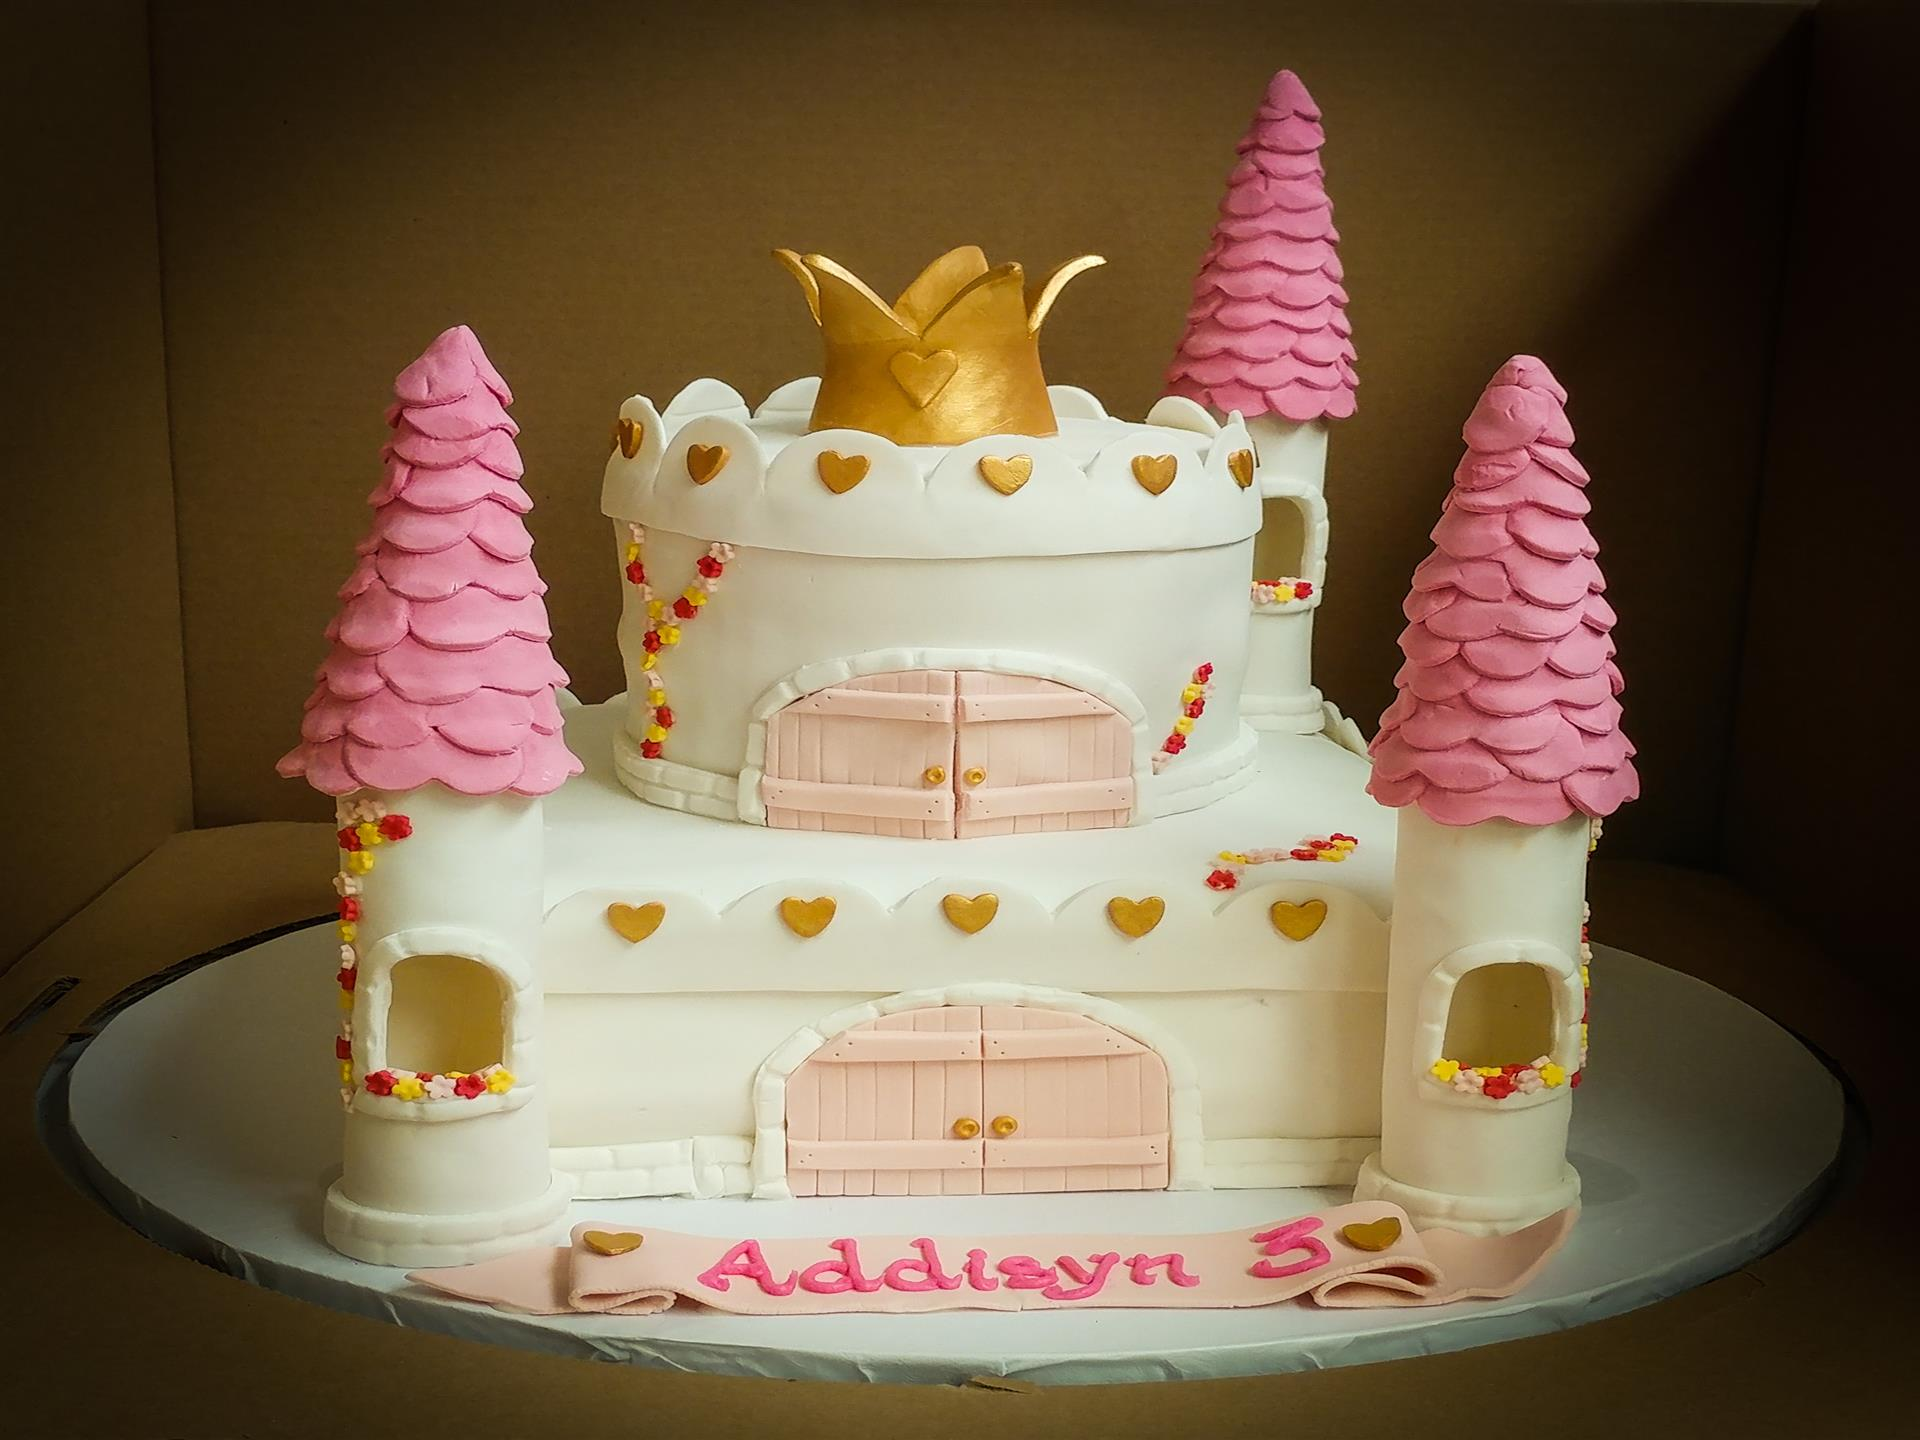 Pink and white castle cake with crown on top